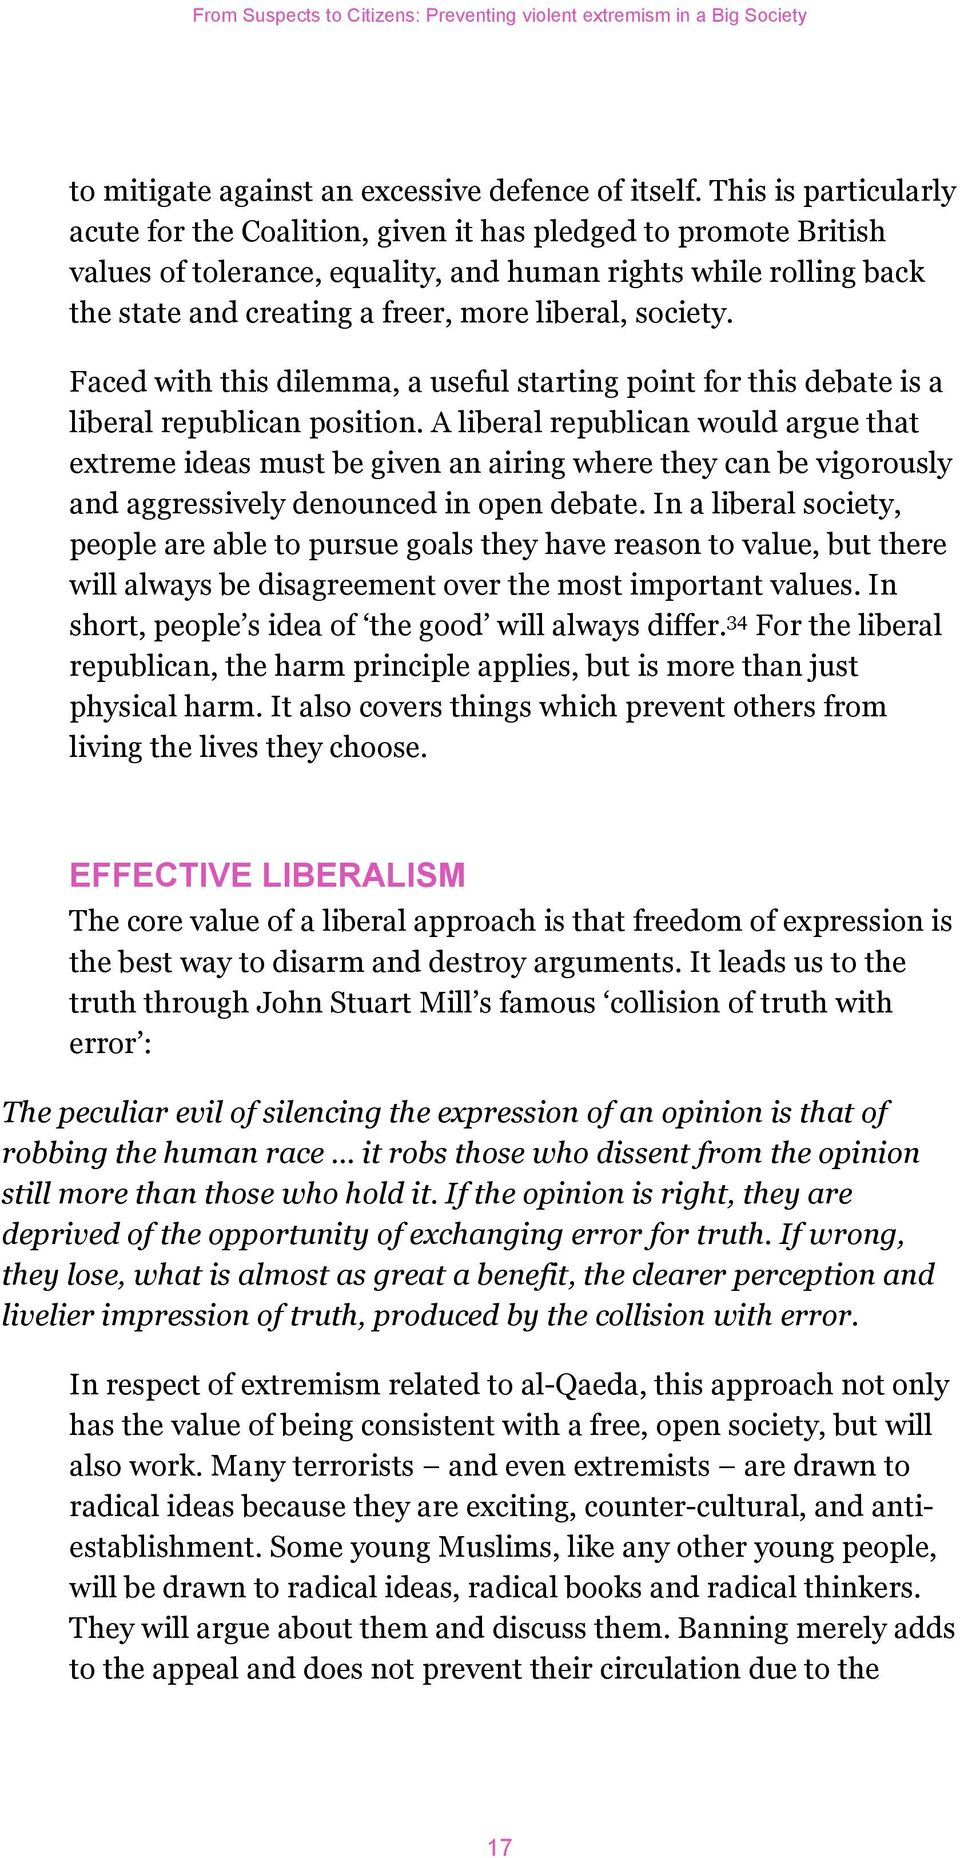 society. Faced with this dilemma, a useful starting point for this debate is a liberal republican position.